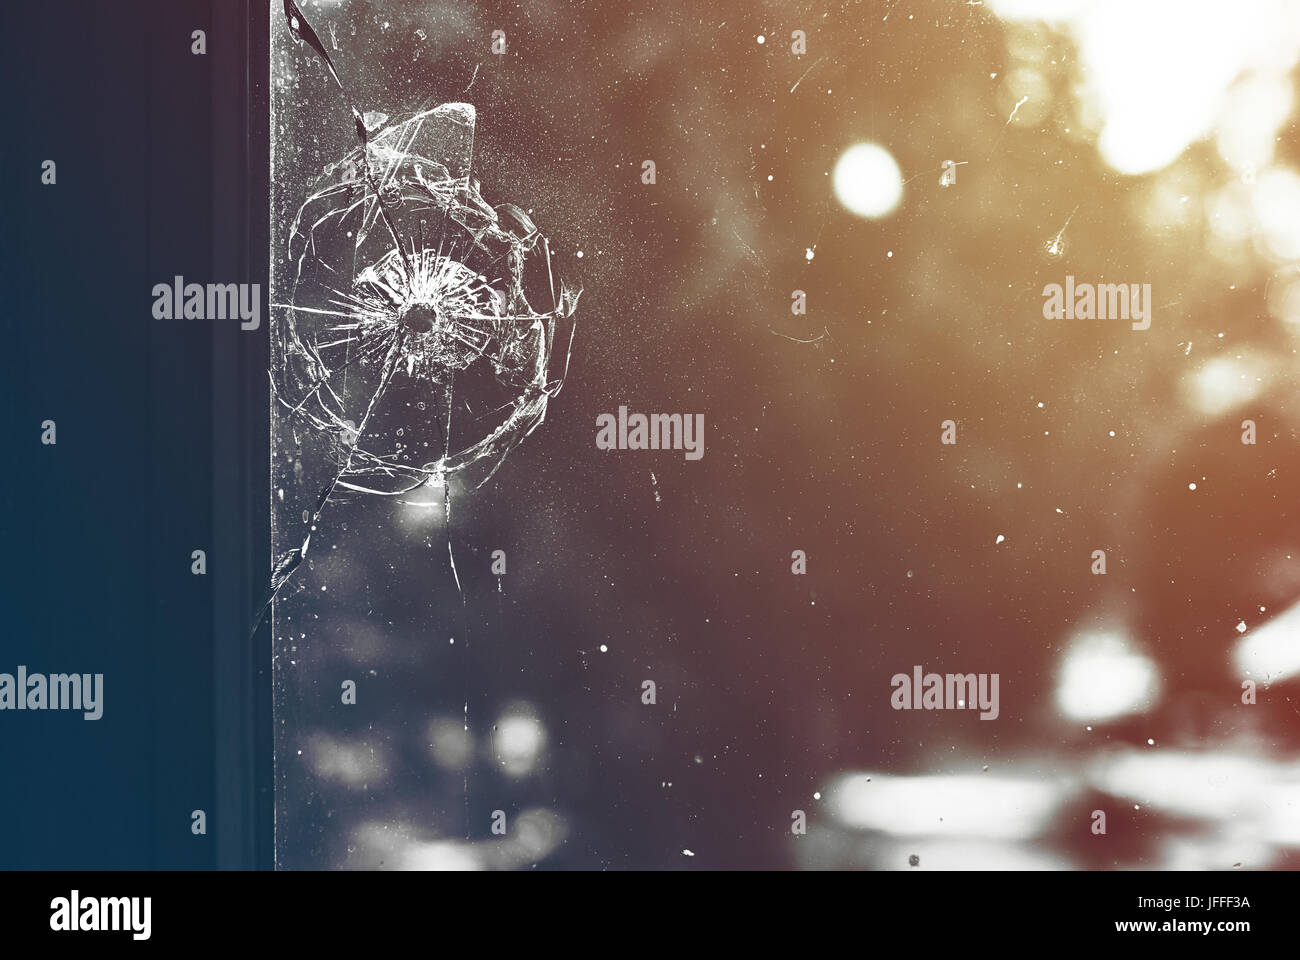 Bullet hole in the dirty window glass - Stock Image